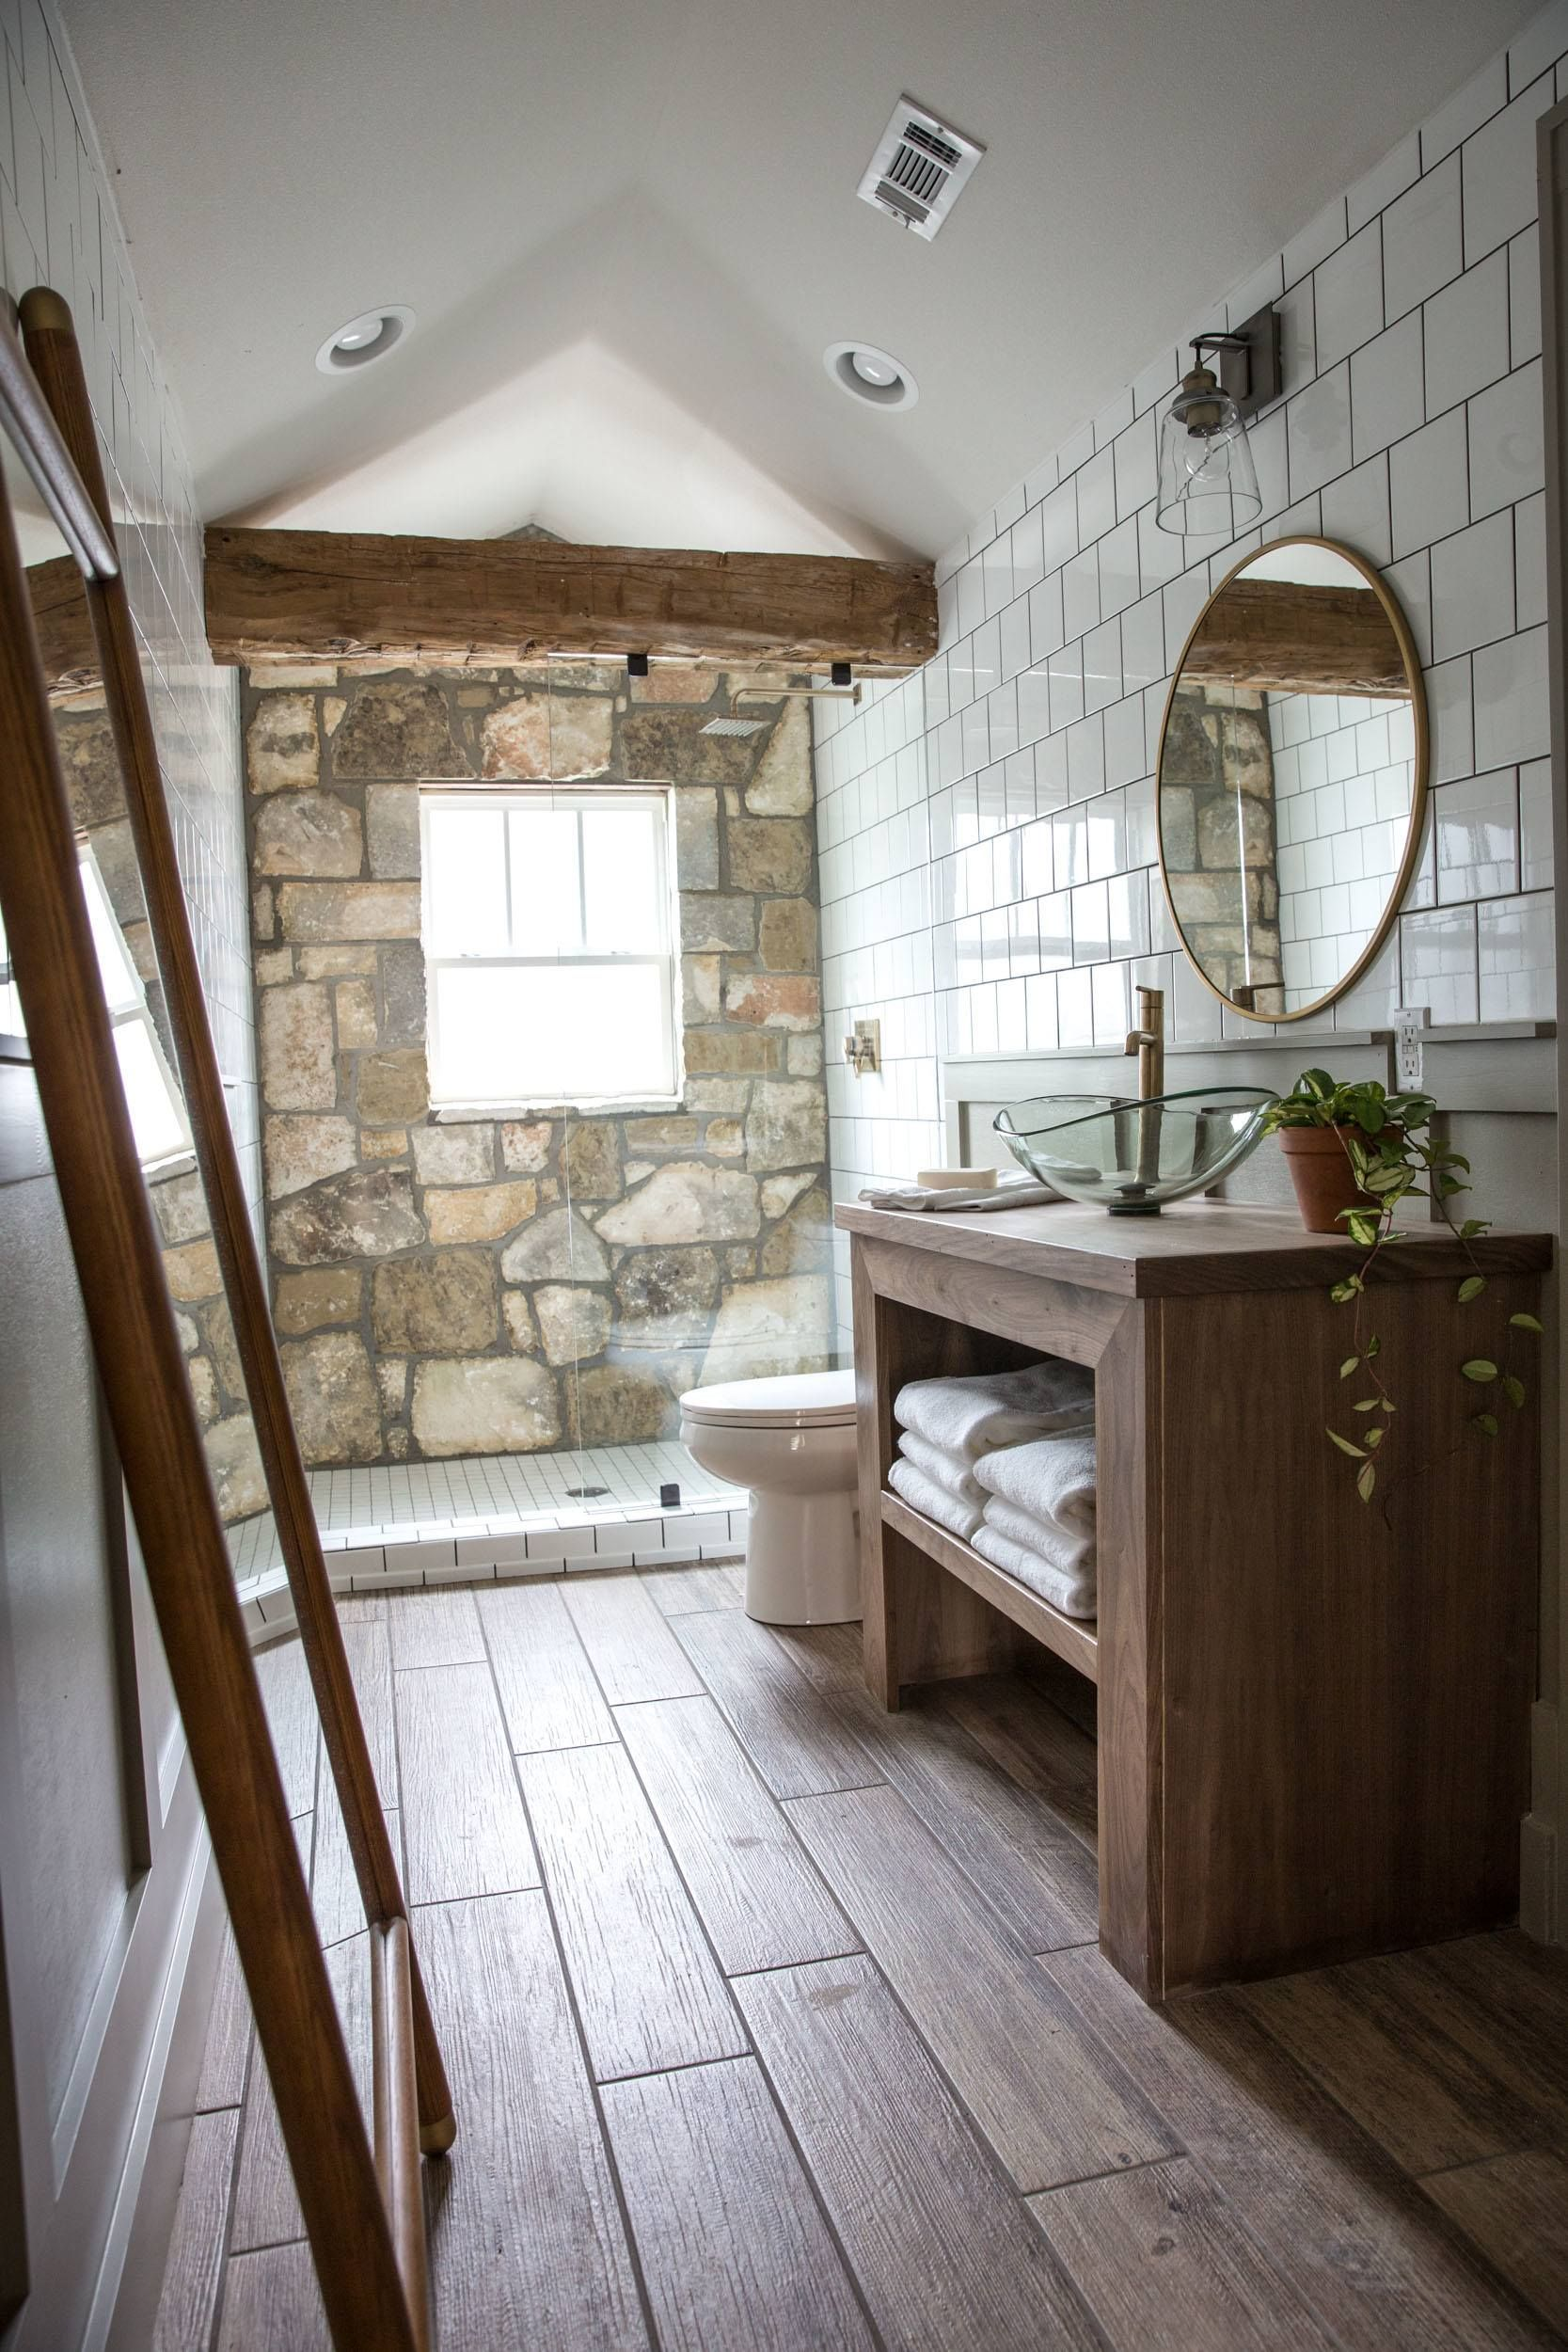 Bathroom Remodel Waco Tx episode 15 - the giraffe house | joanna gaines, master bathrooms